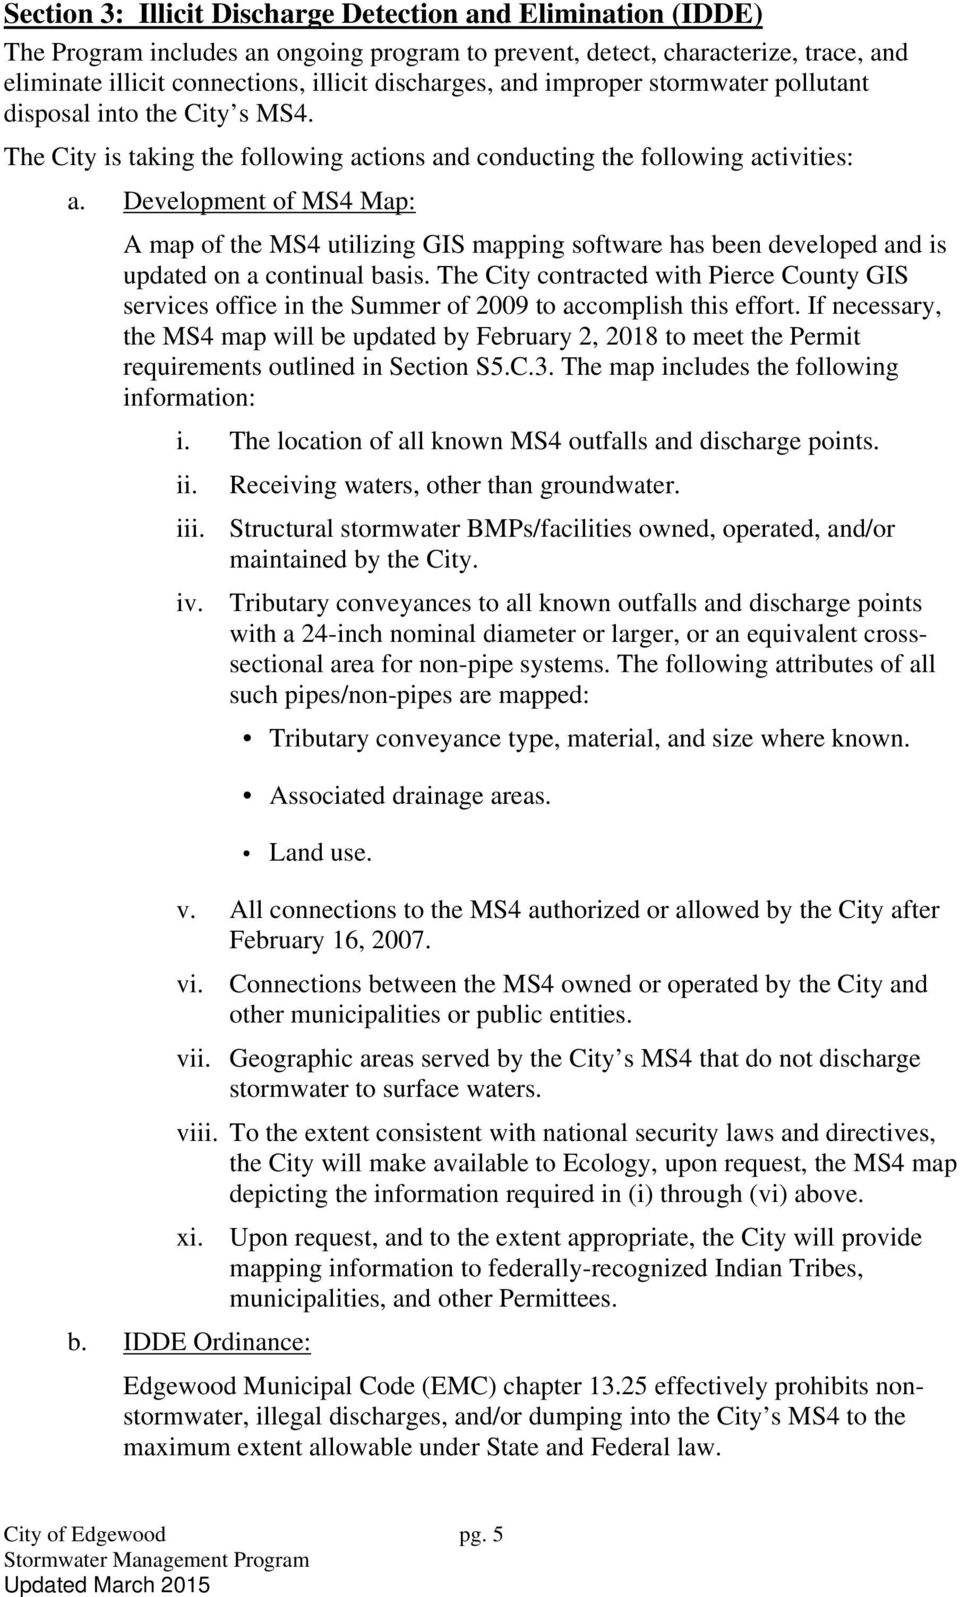 Development of MS4 Map: A map of the MS4 utilizing GIS mapping software has been developed and is updated on a continual basis.